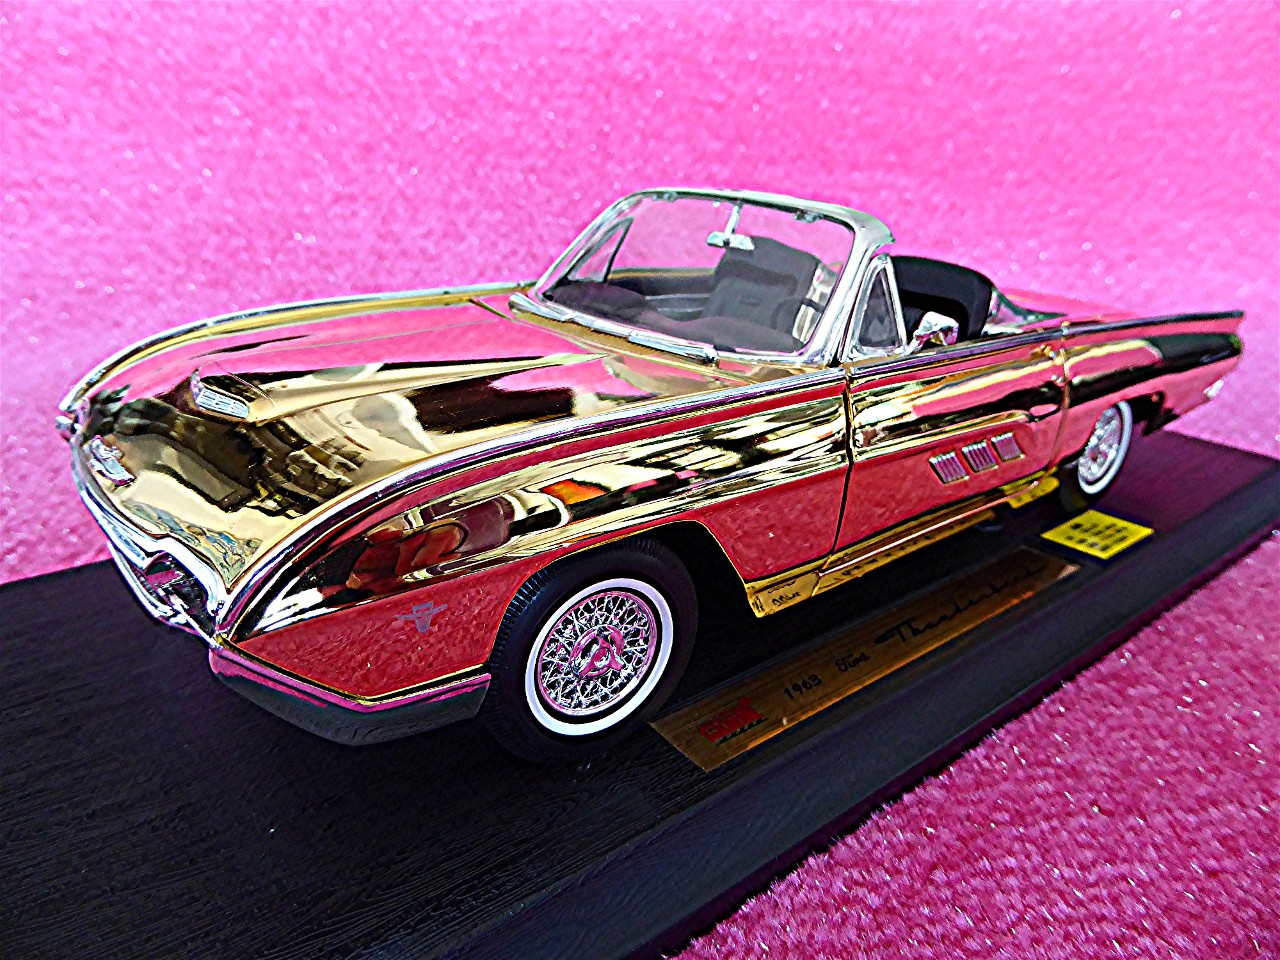 Ford Thunderbird Roadster gold 1963